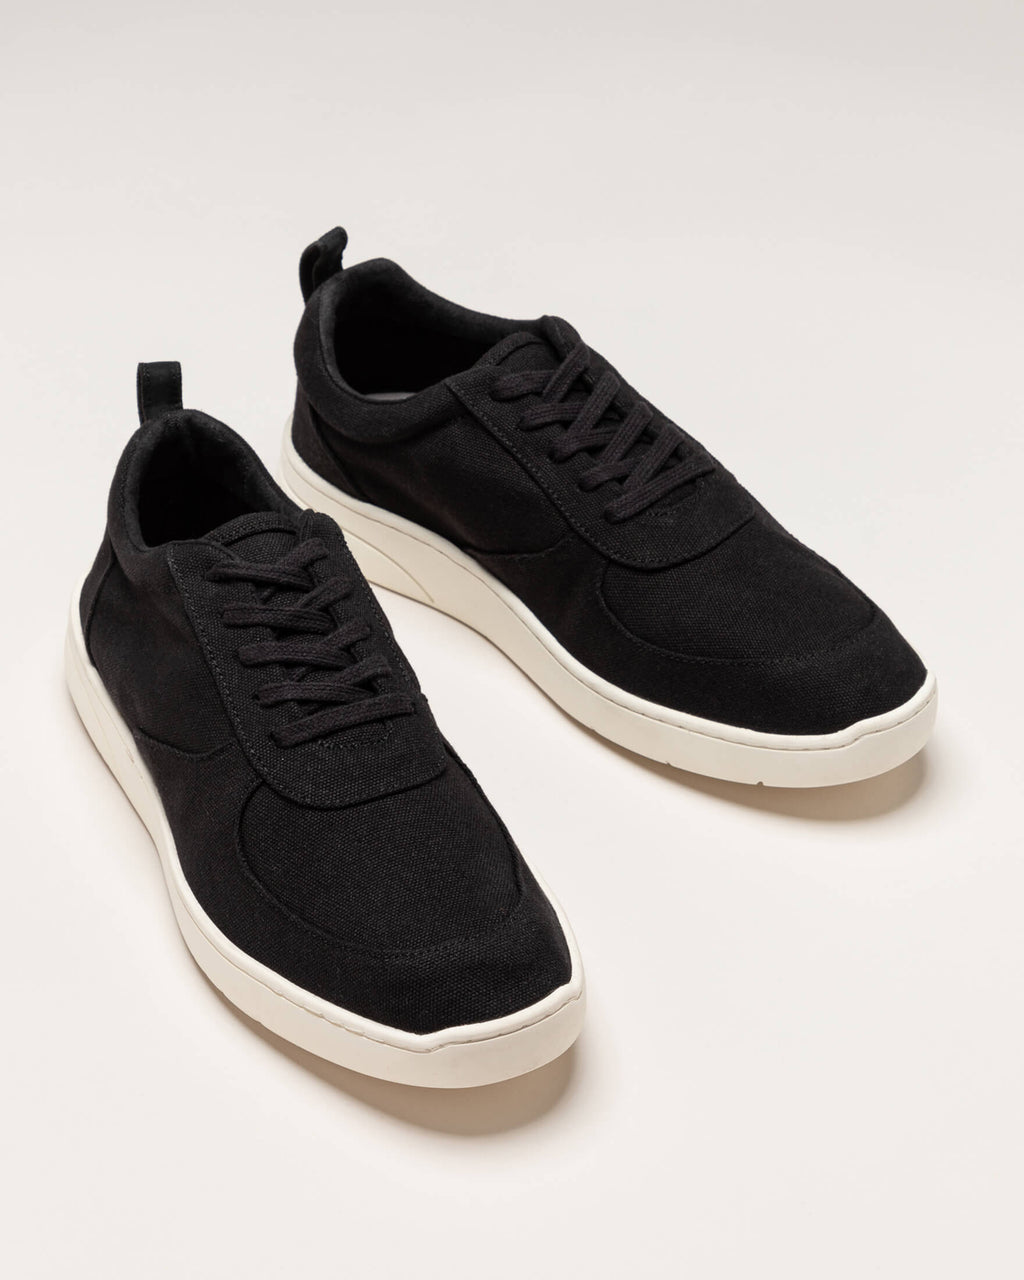 variant_2 | EN black men's sneakers with laces | DE schwarze herren sneakers mit Schnürsenkel